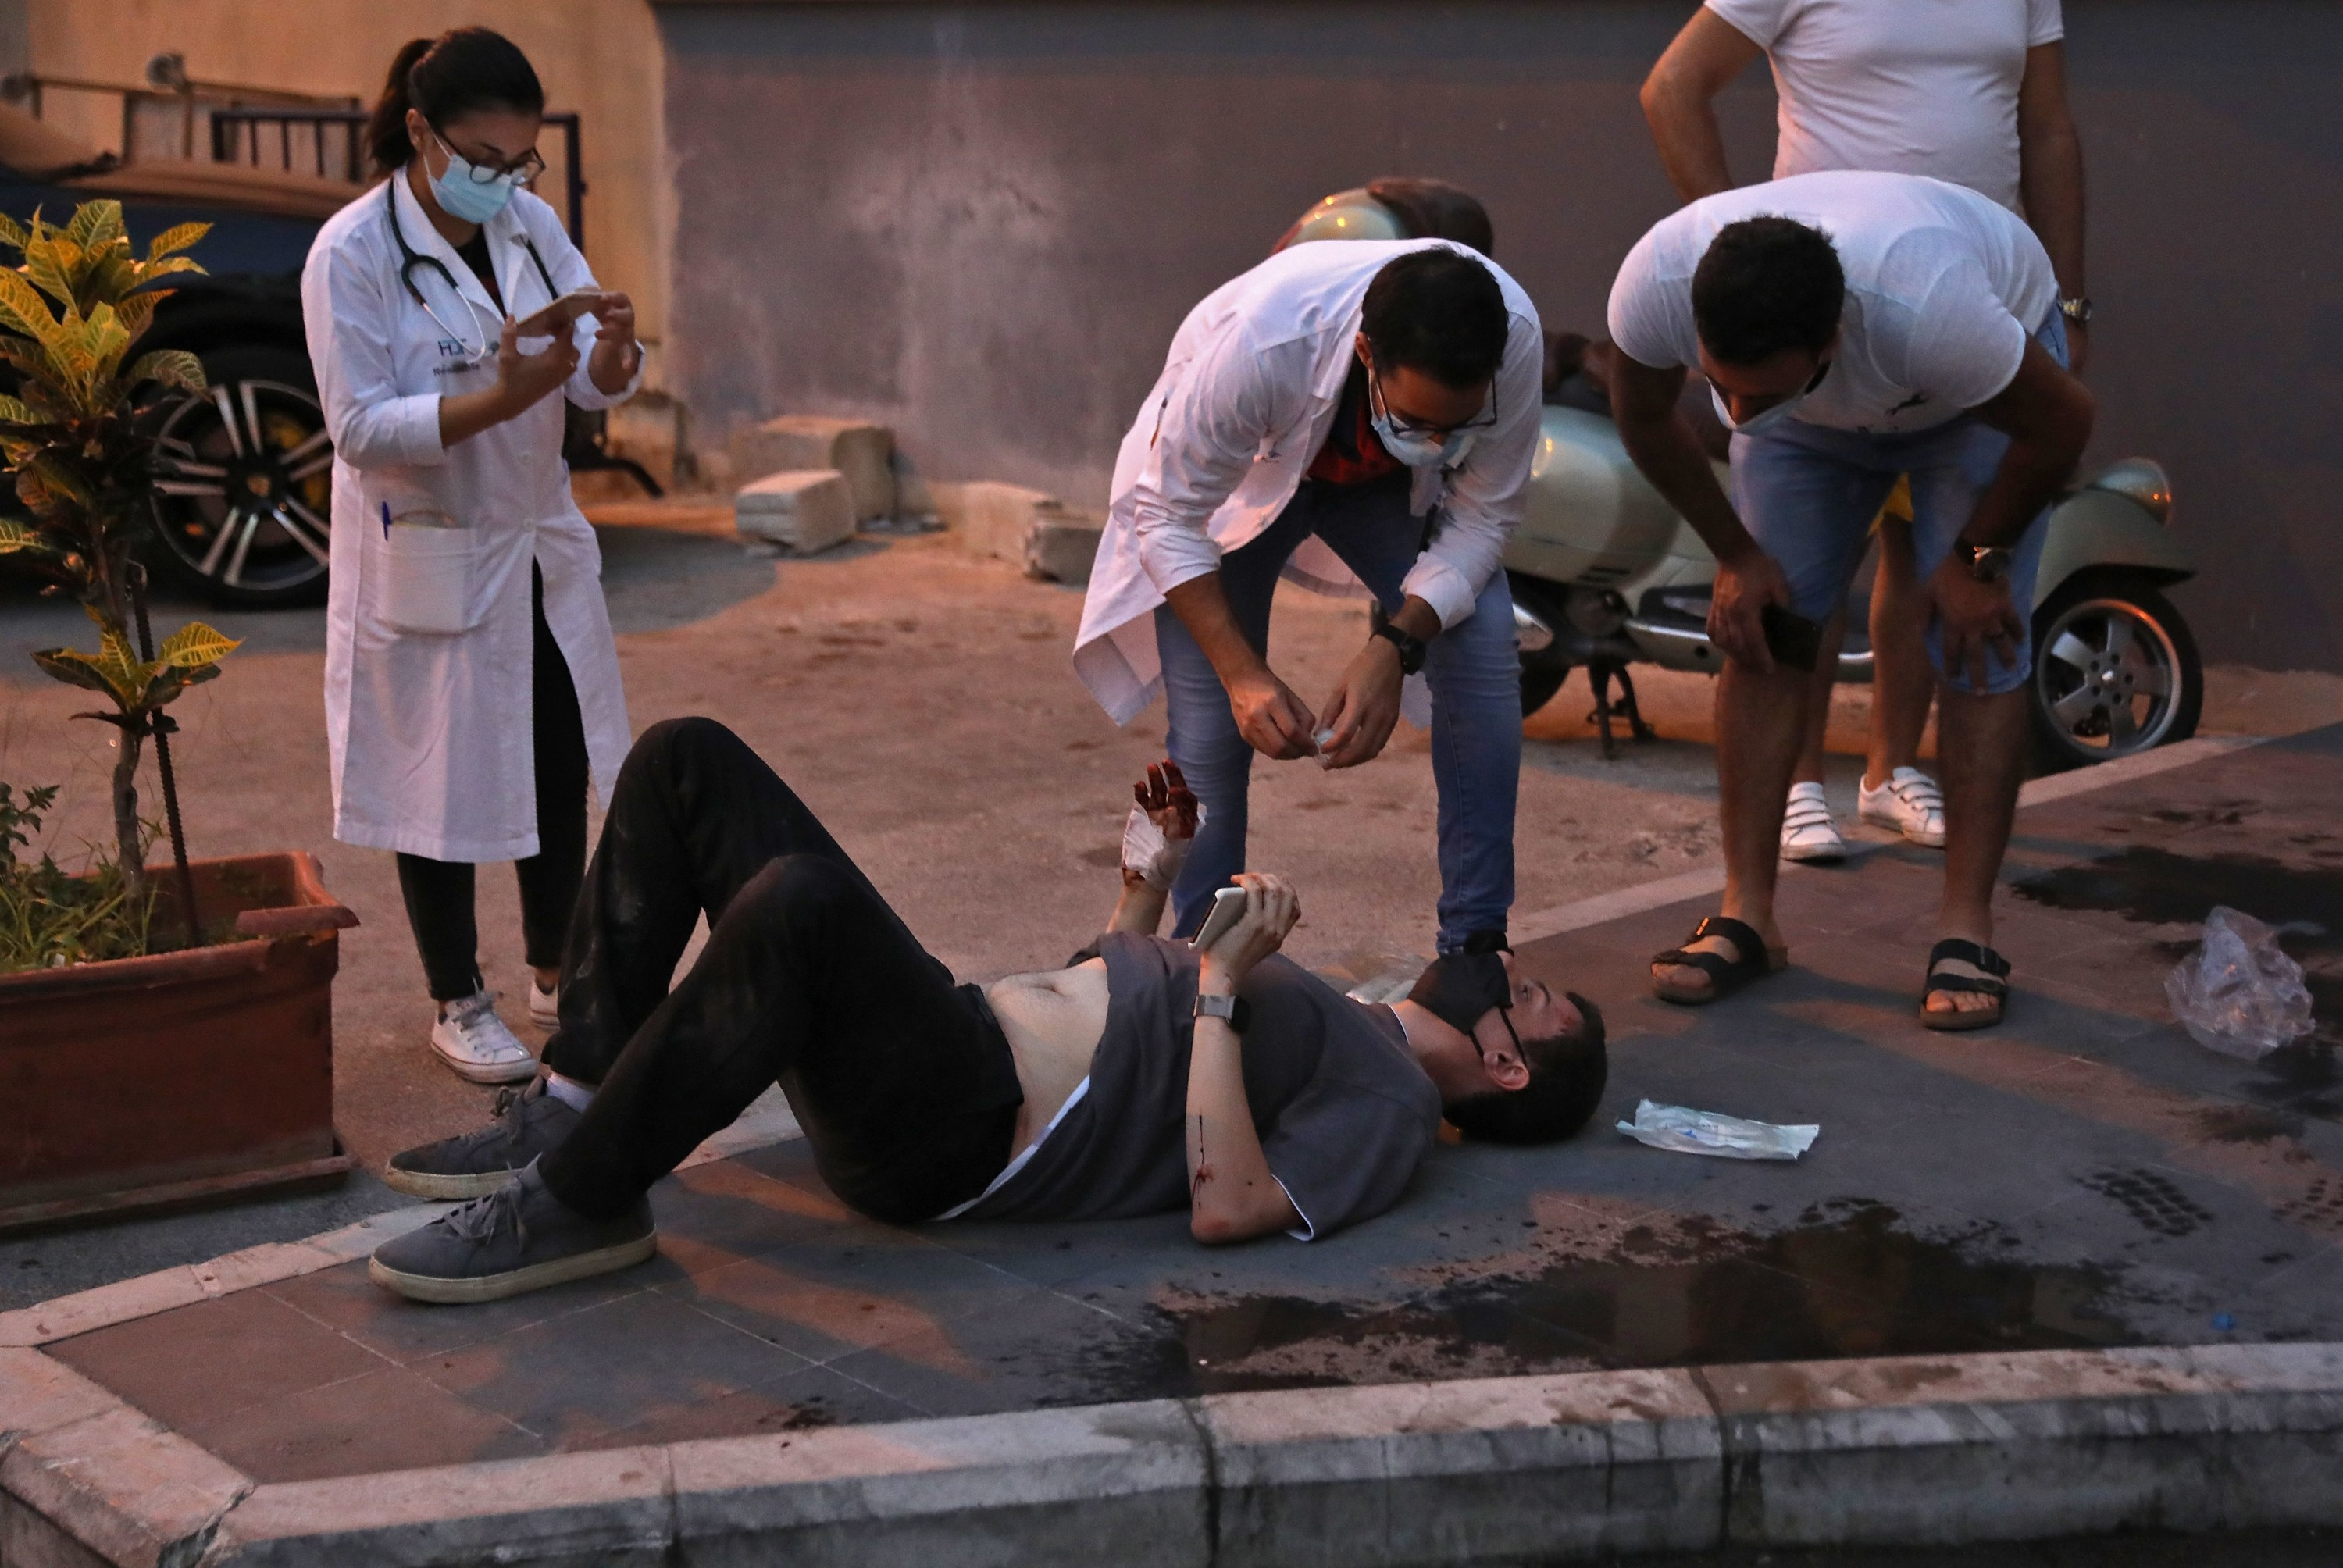 Three doctors in white coats stand over an injured man lying on the ground